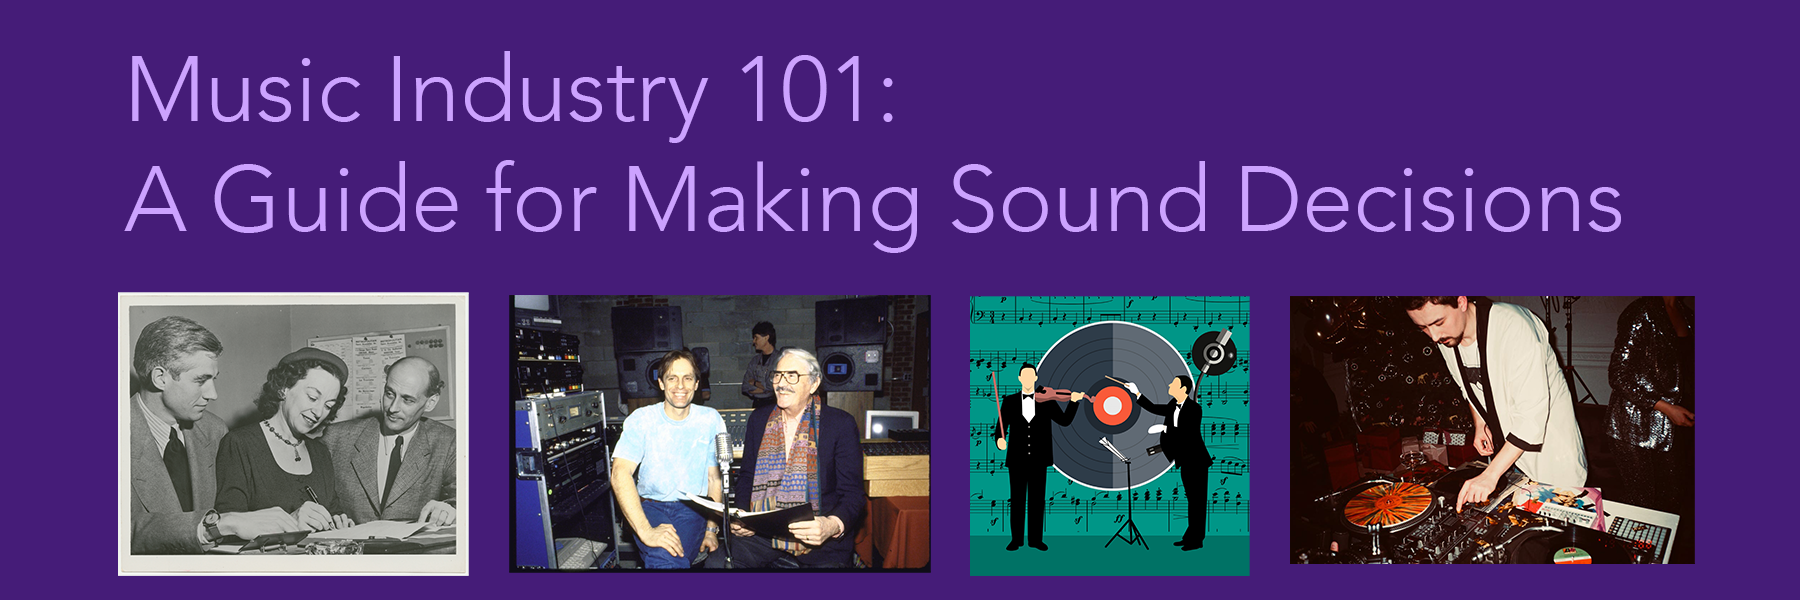 Music Industry 101: A Guide for Making Sound Decisions